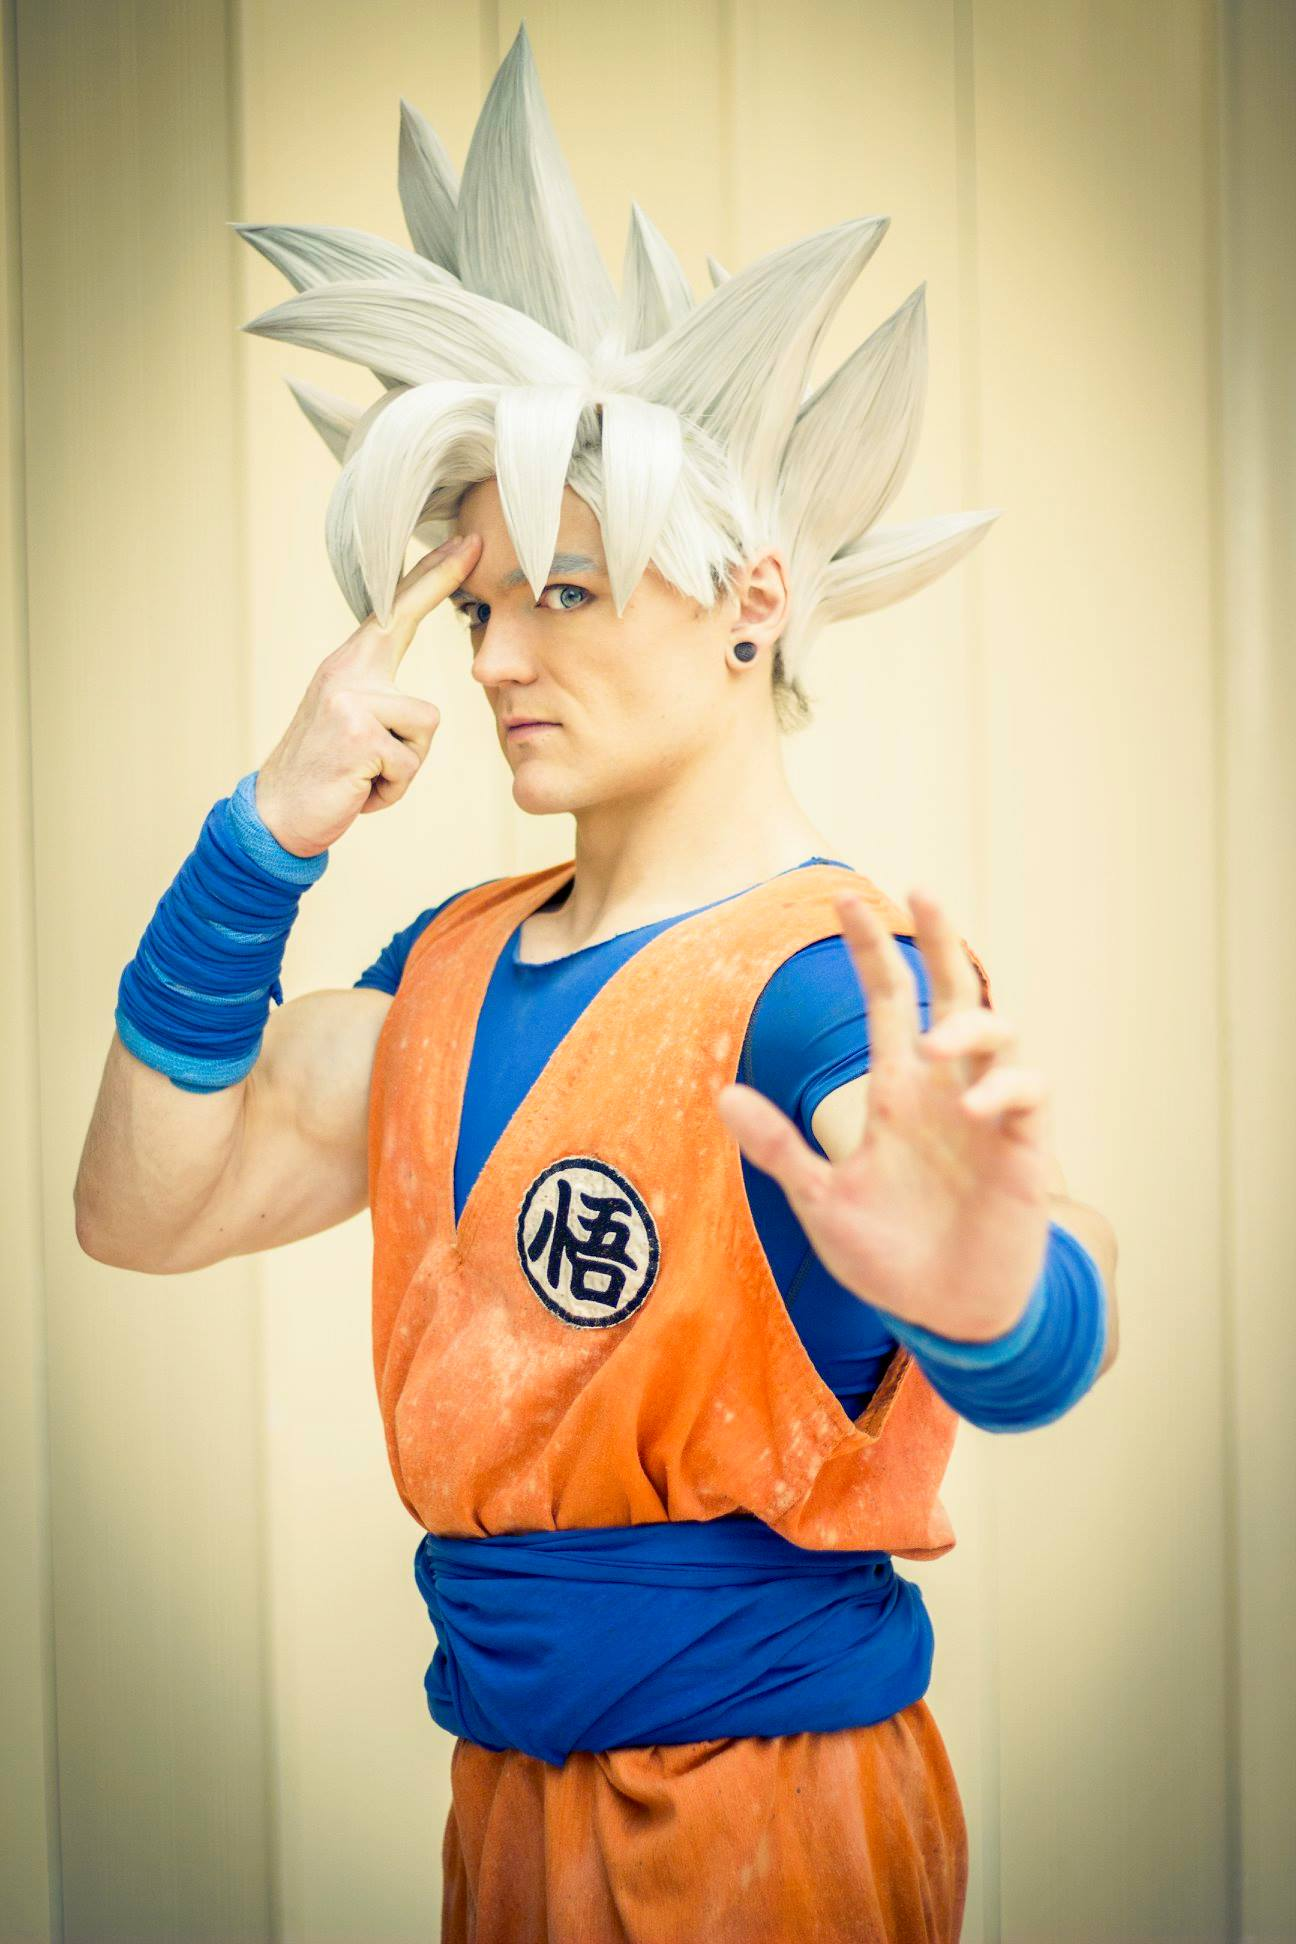 Mastered ultra instinct Goku cosplay from DragonBall Super